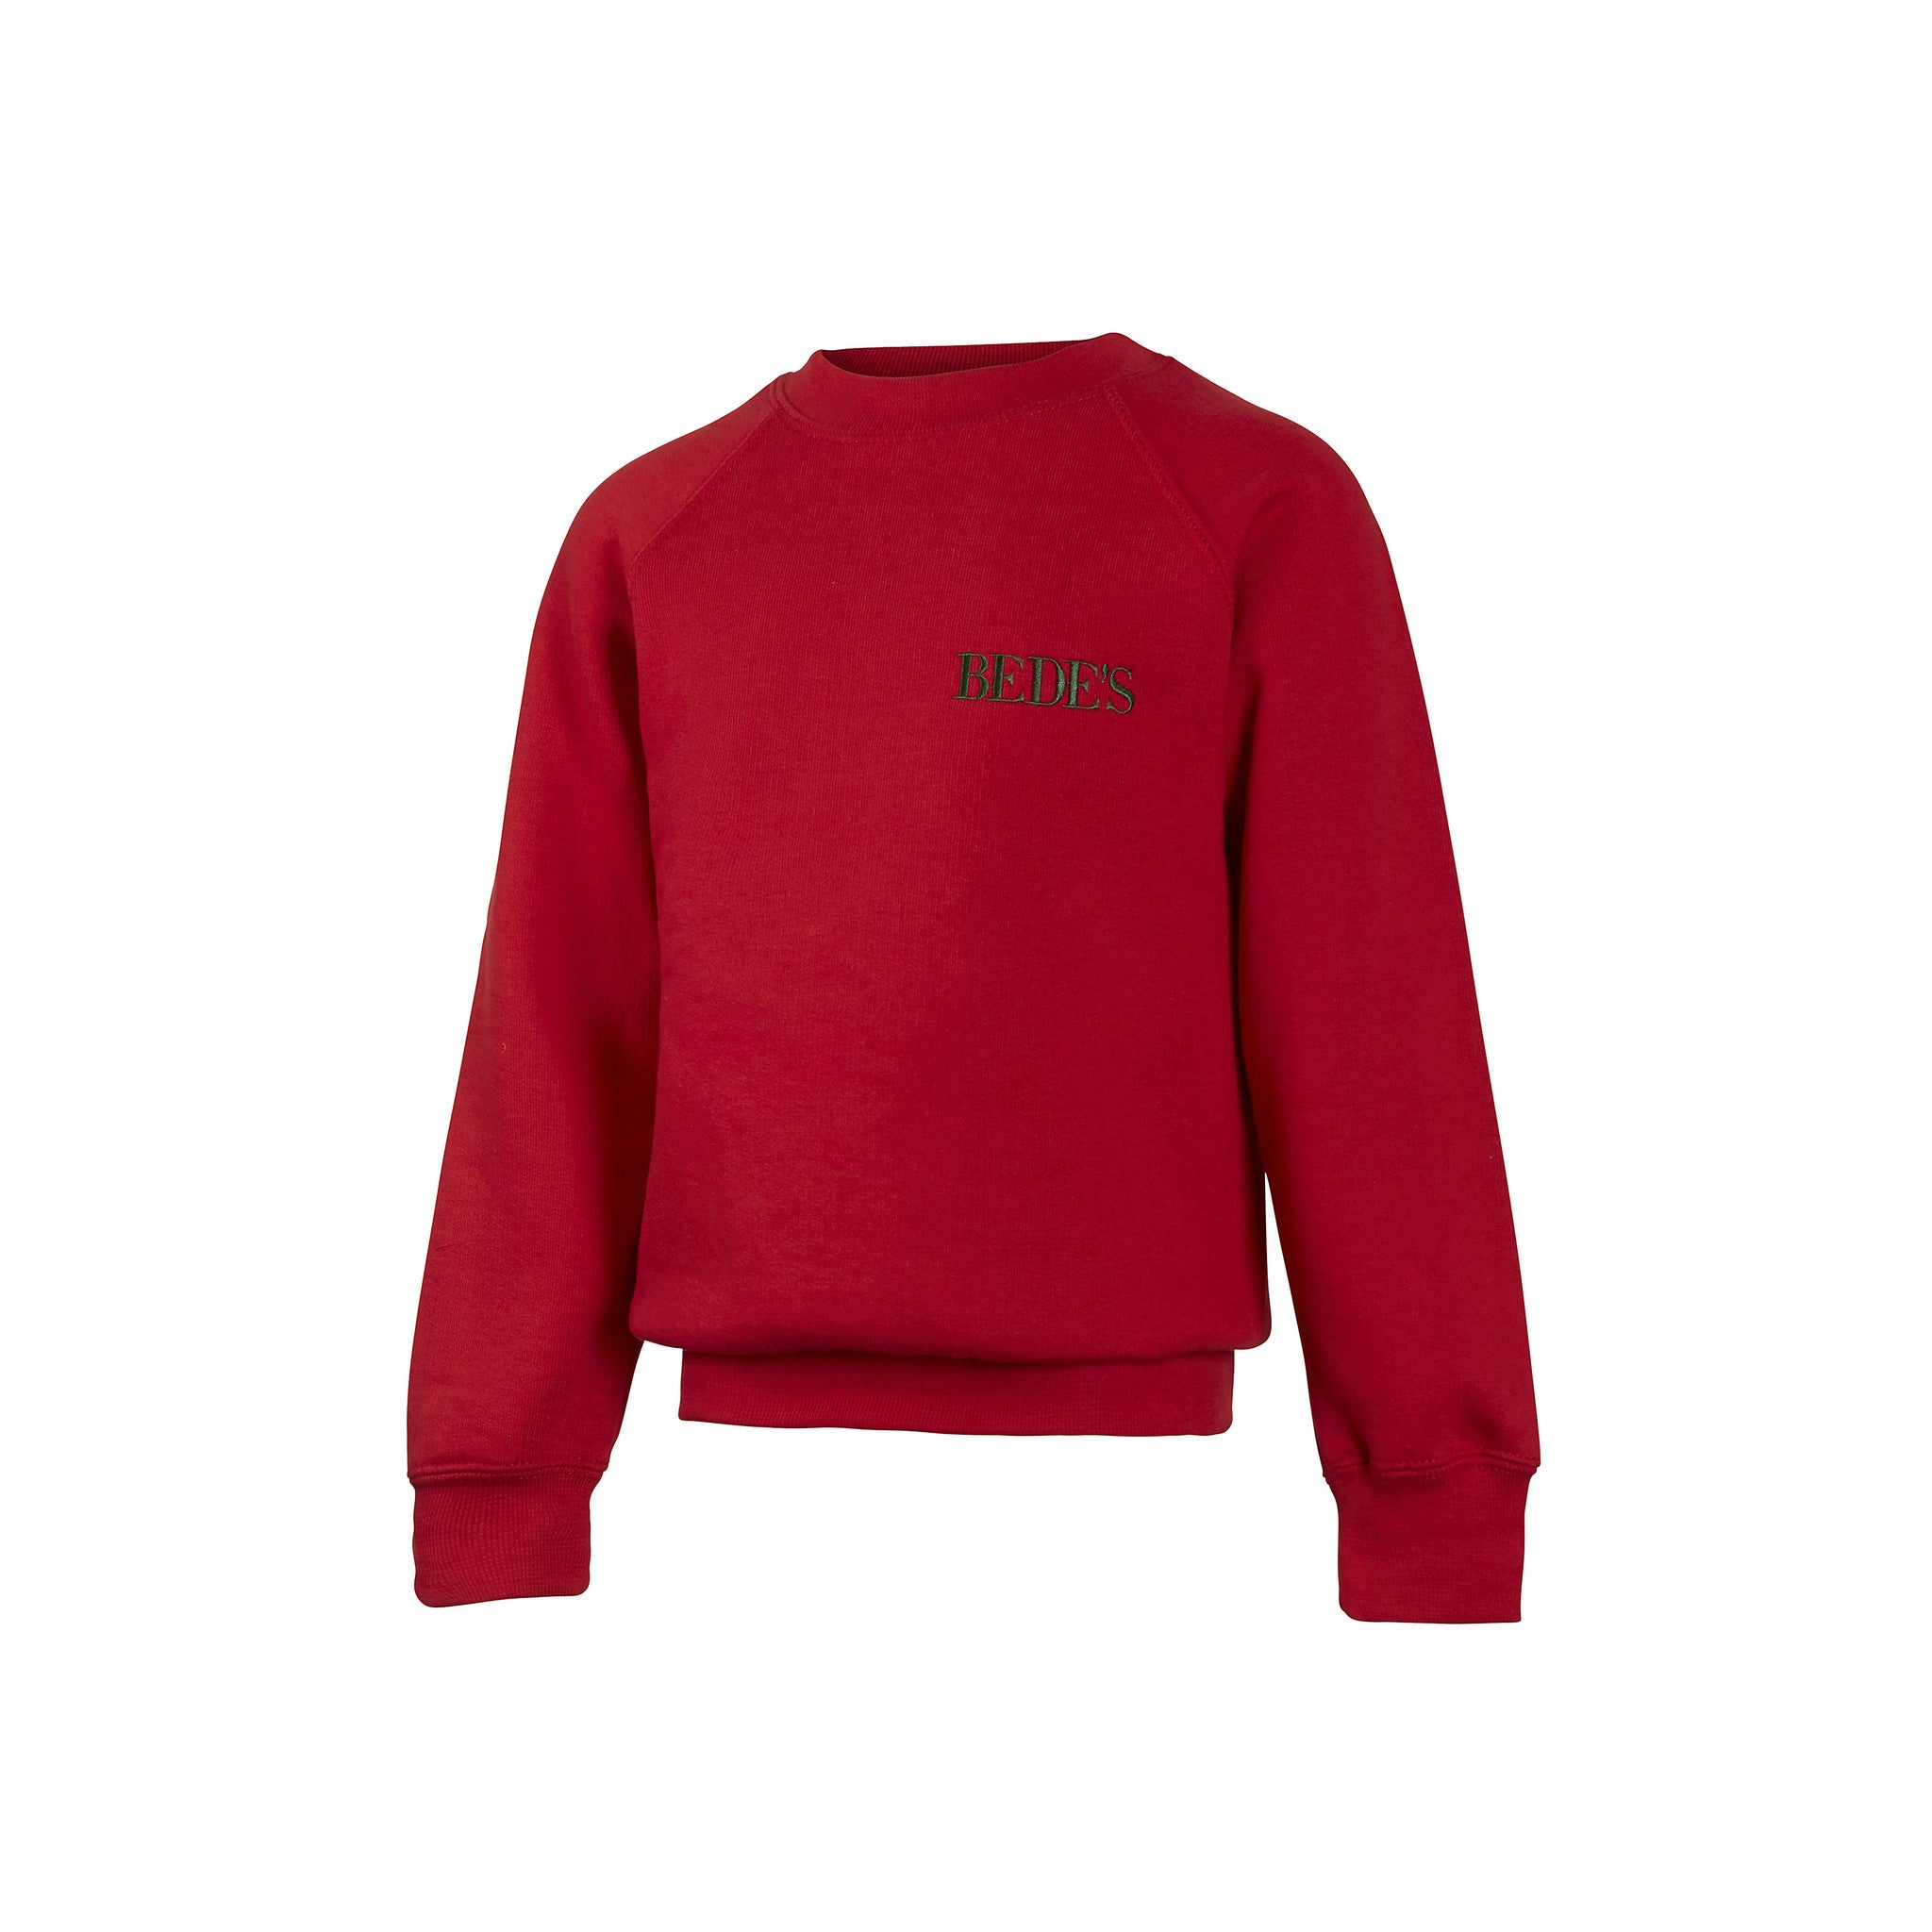 Prep Unisex Red Jumper